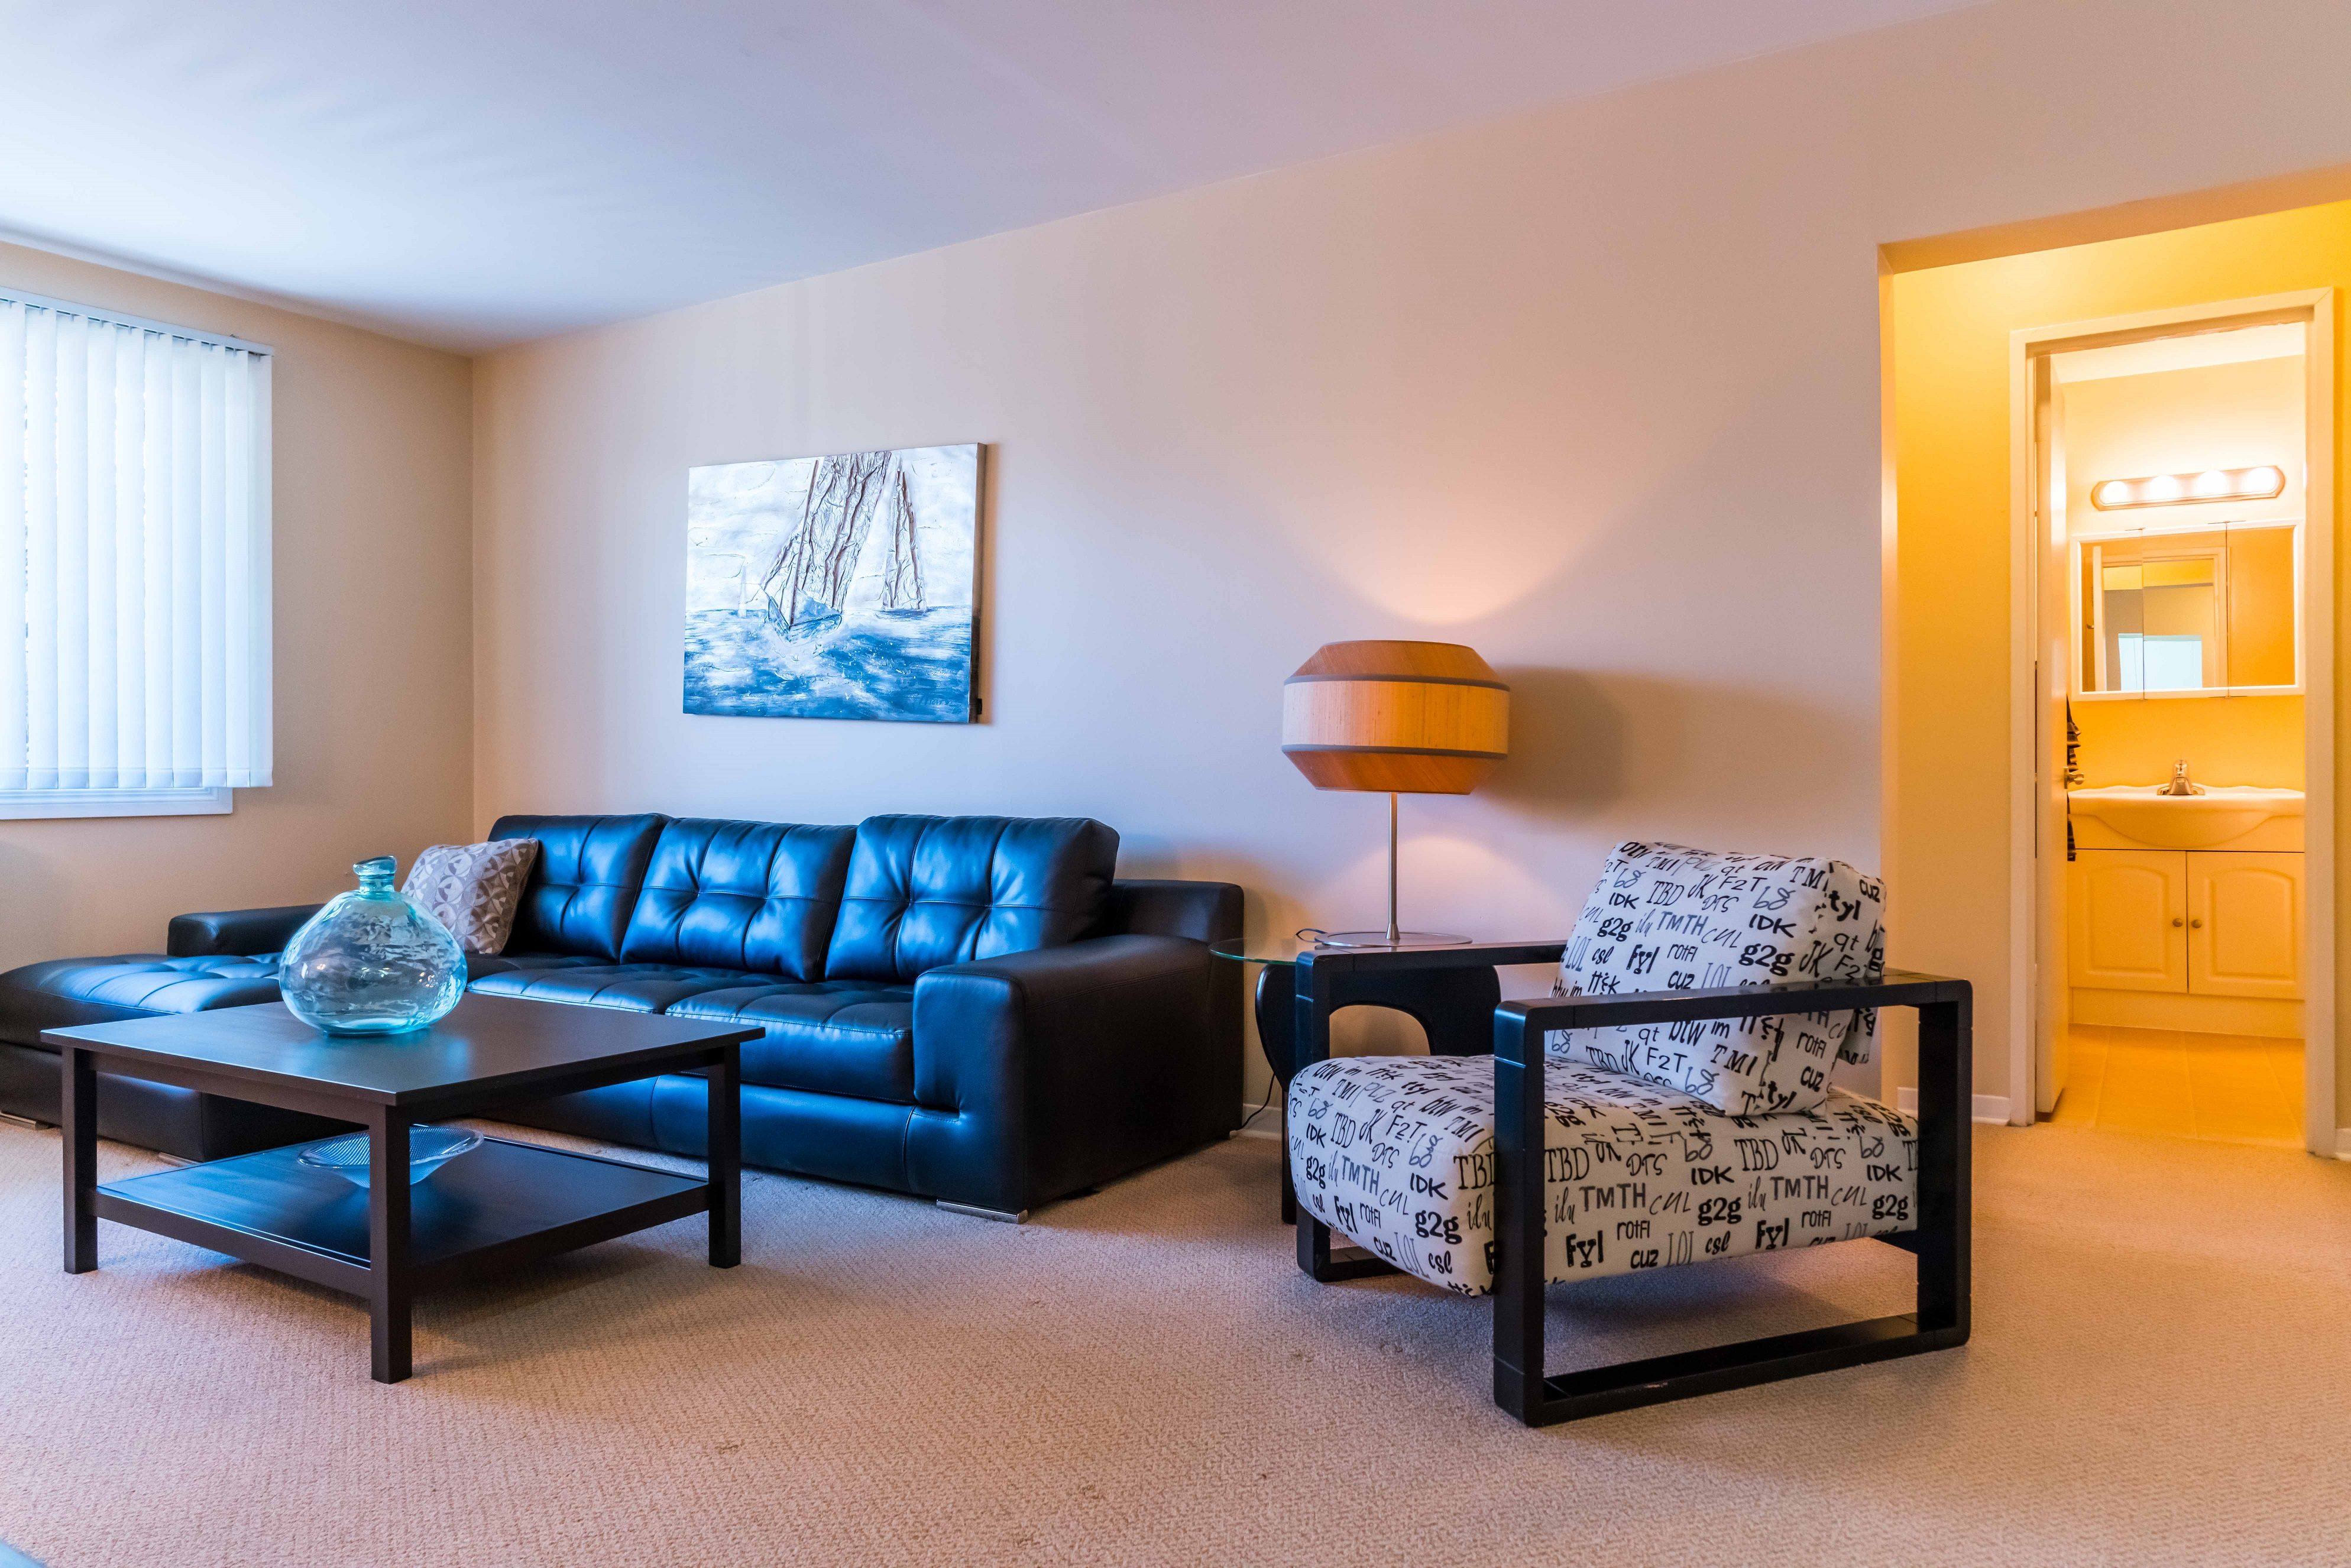 Apartments For Rent Winnipeg -555 River Apartment Family Room